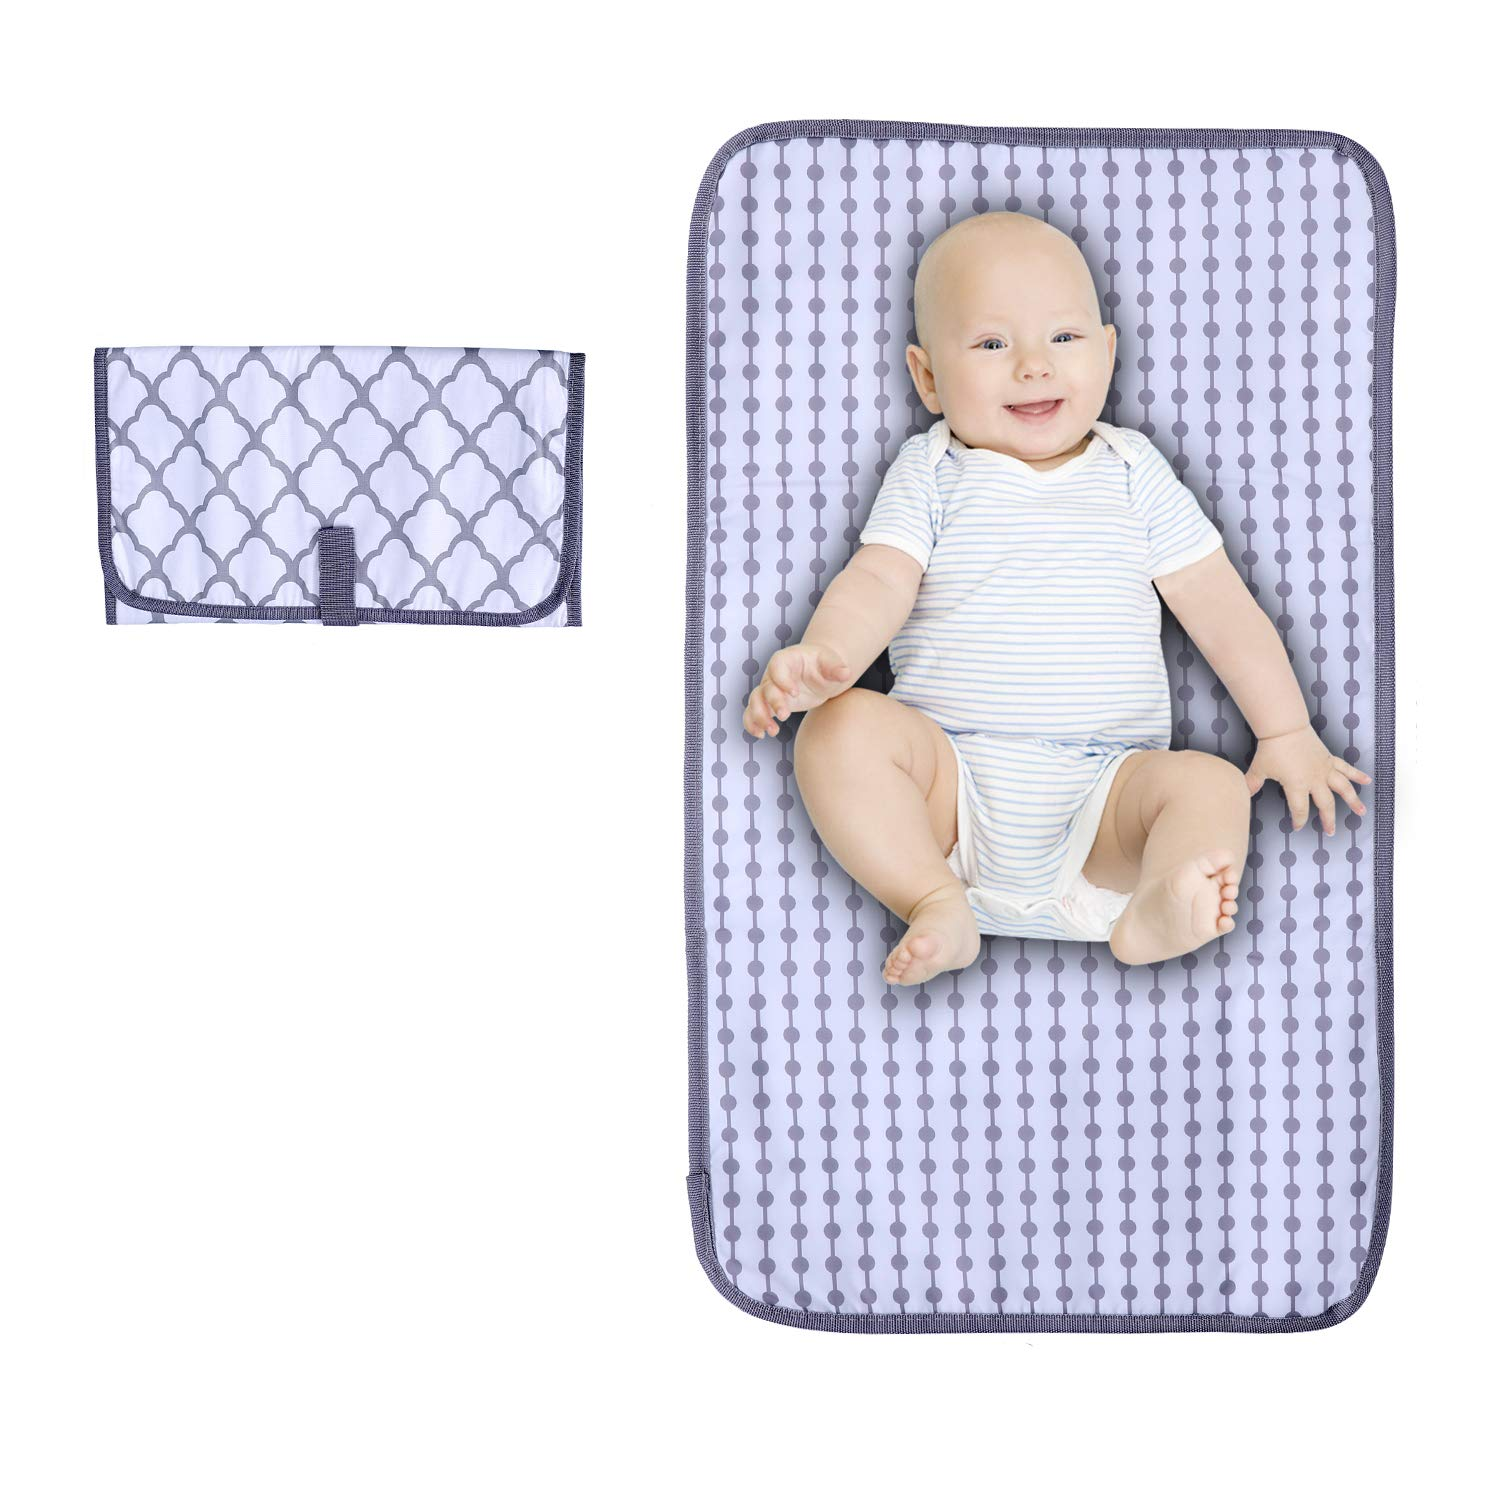 Portable Diaper Changing Pad, LEASEN Portable Changing pad for Newborn Boy & Girl, Waterproof Travel Portable Changing Table with Smart Wipes Pocket (Gray Rhombus)…